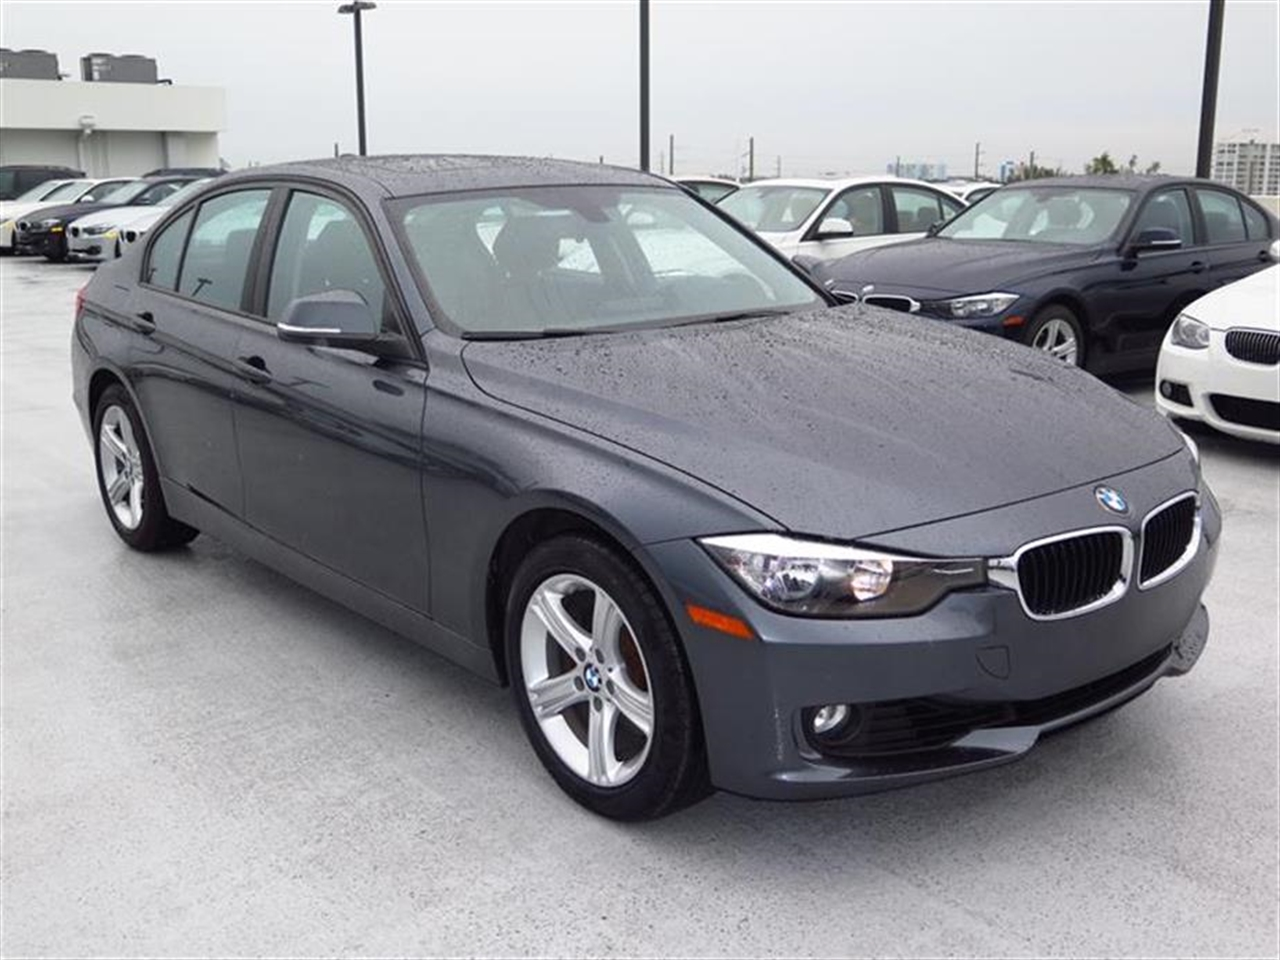 2012 BMW 3 SERIES 4dr Sdn 328i RWD 27592 miles 2-way headrests with active head restraints 3-spo